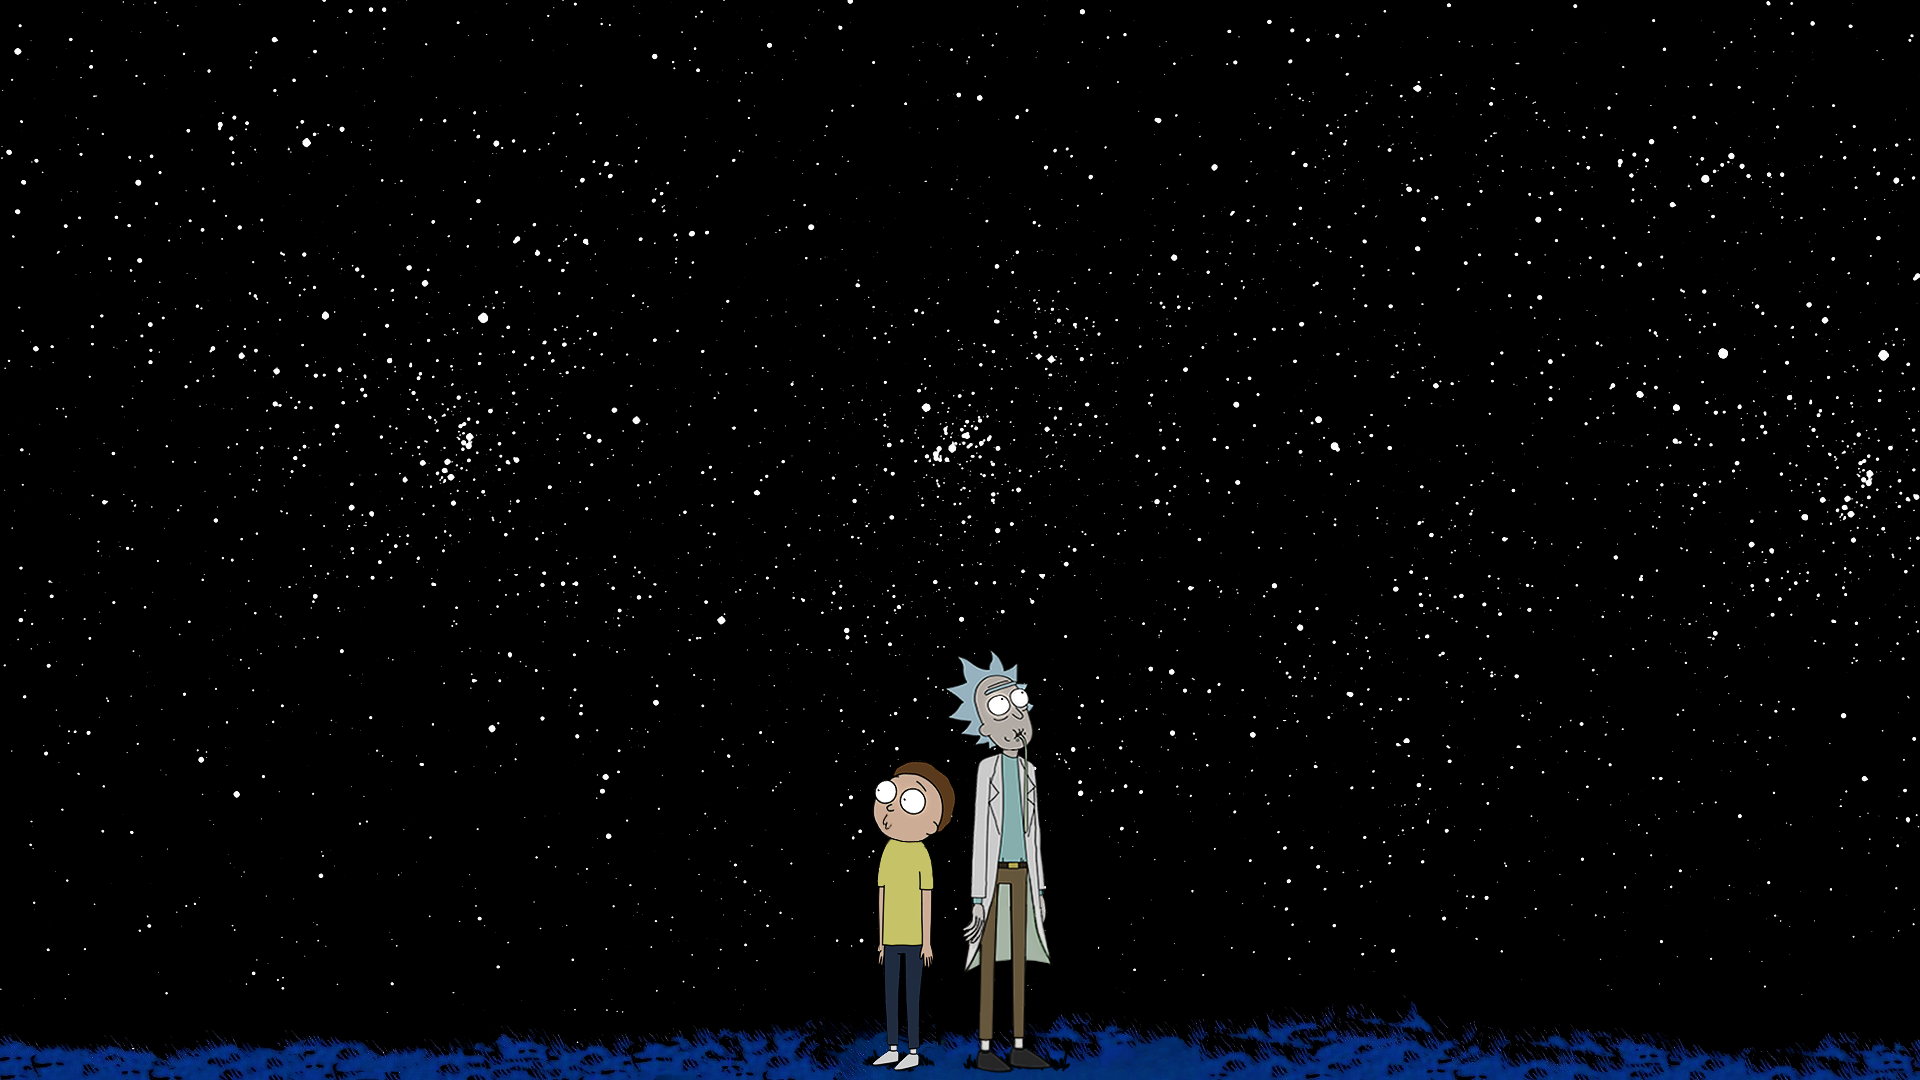 Rick and Morty wallpaper inspired by a resent post : rickandmorty